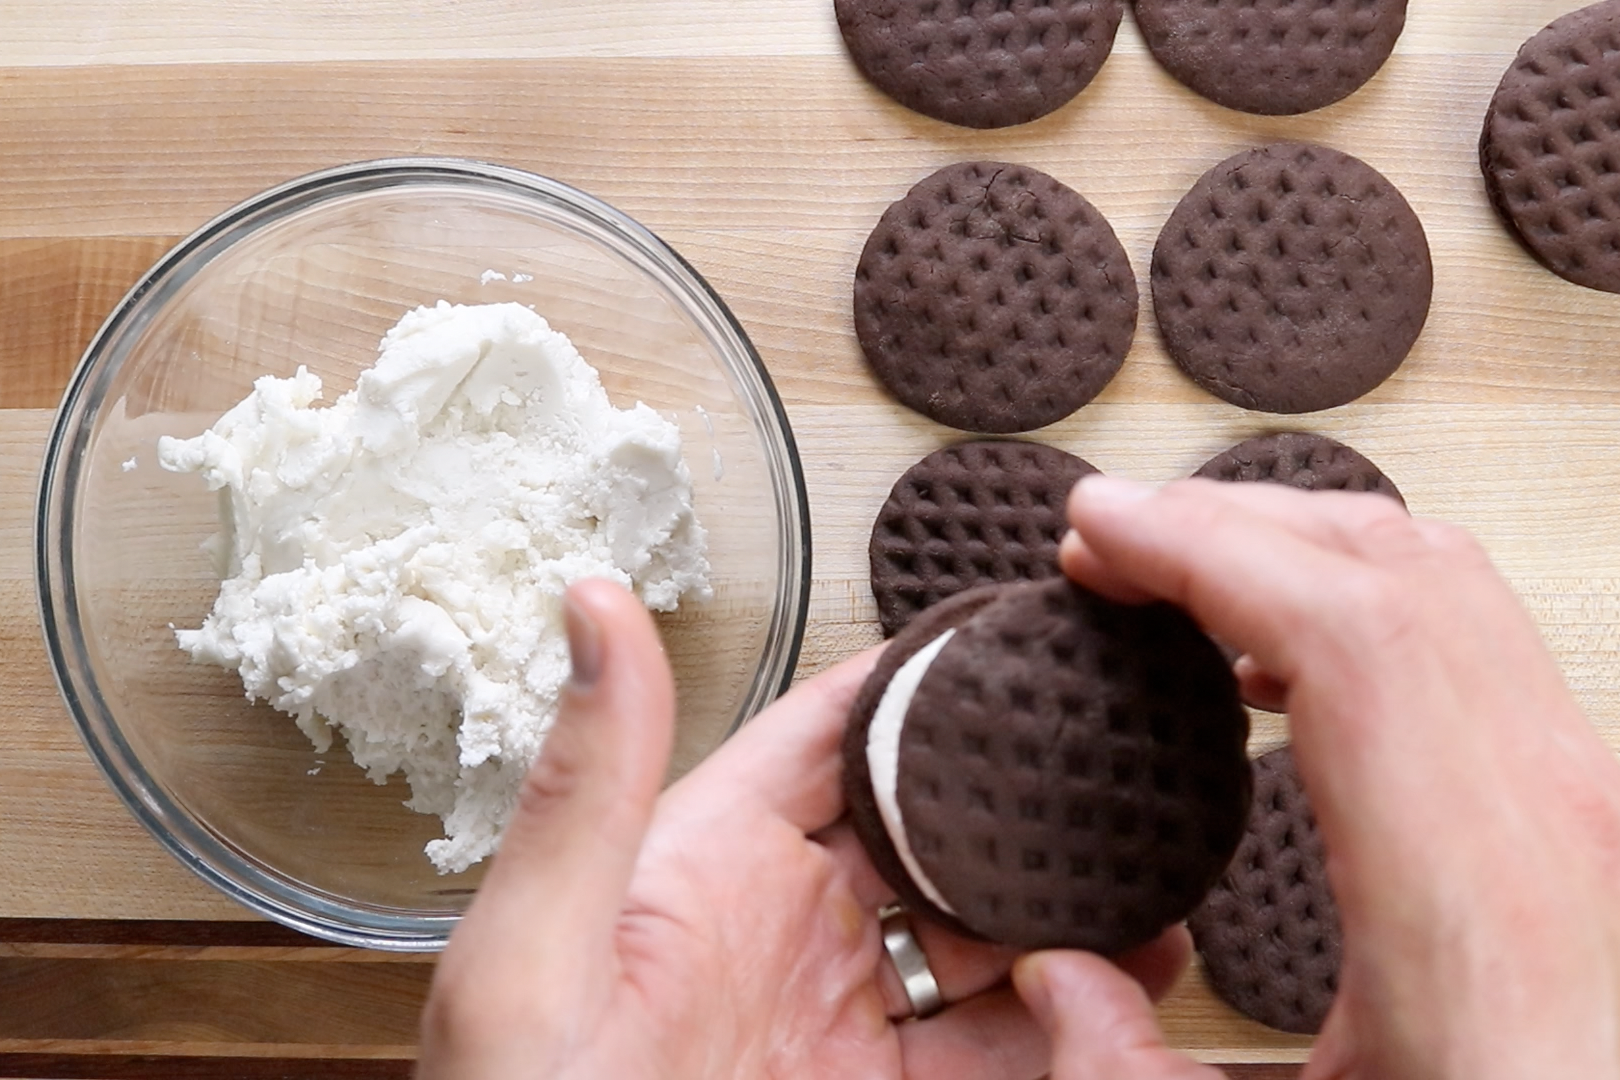 2. Take another cookie and sandwich the filling pressing down until aligned with the edge. -